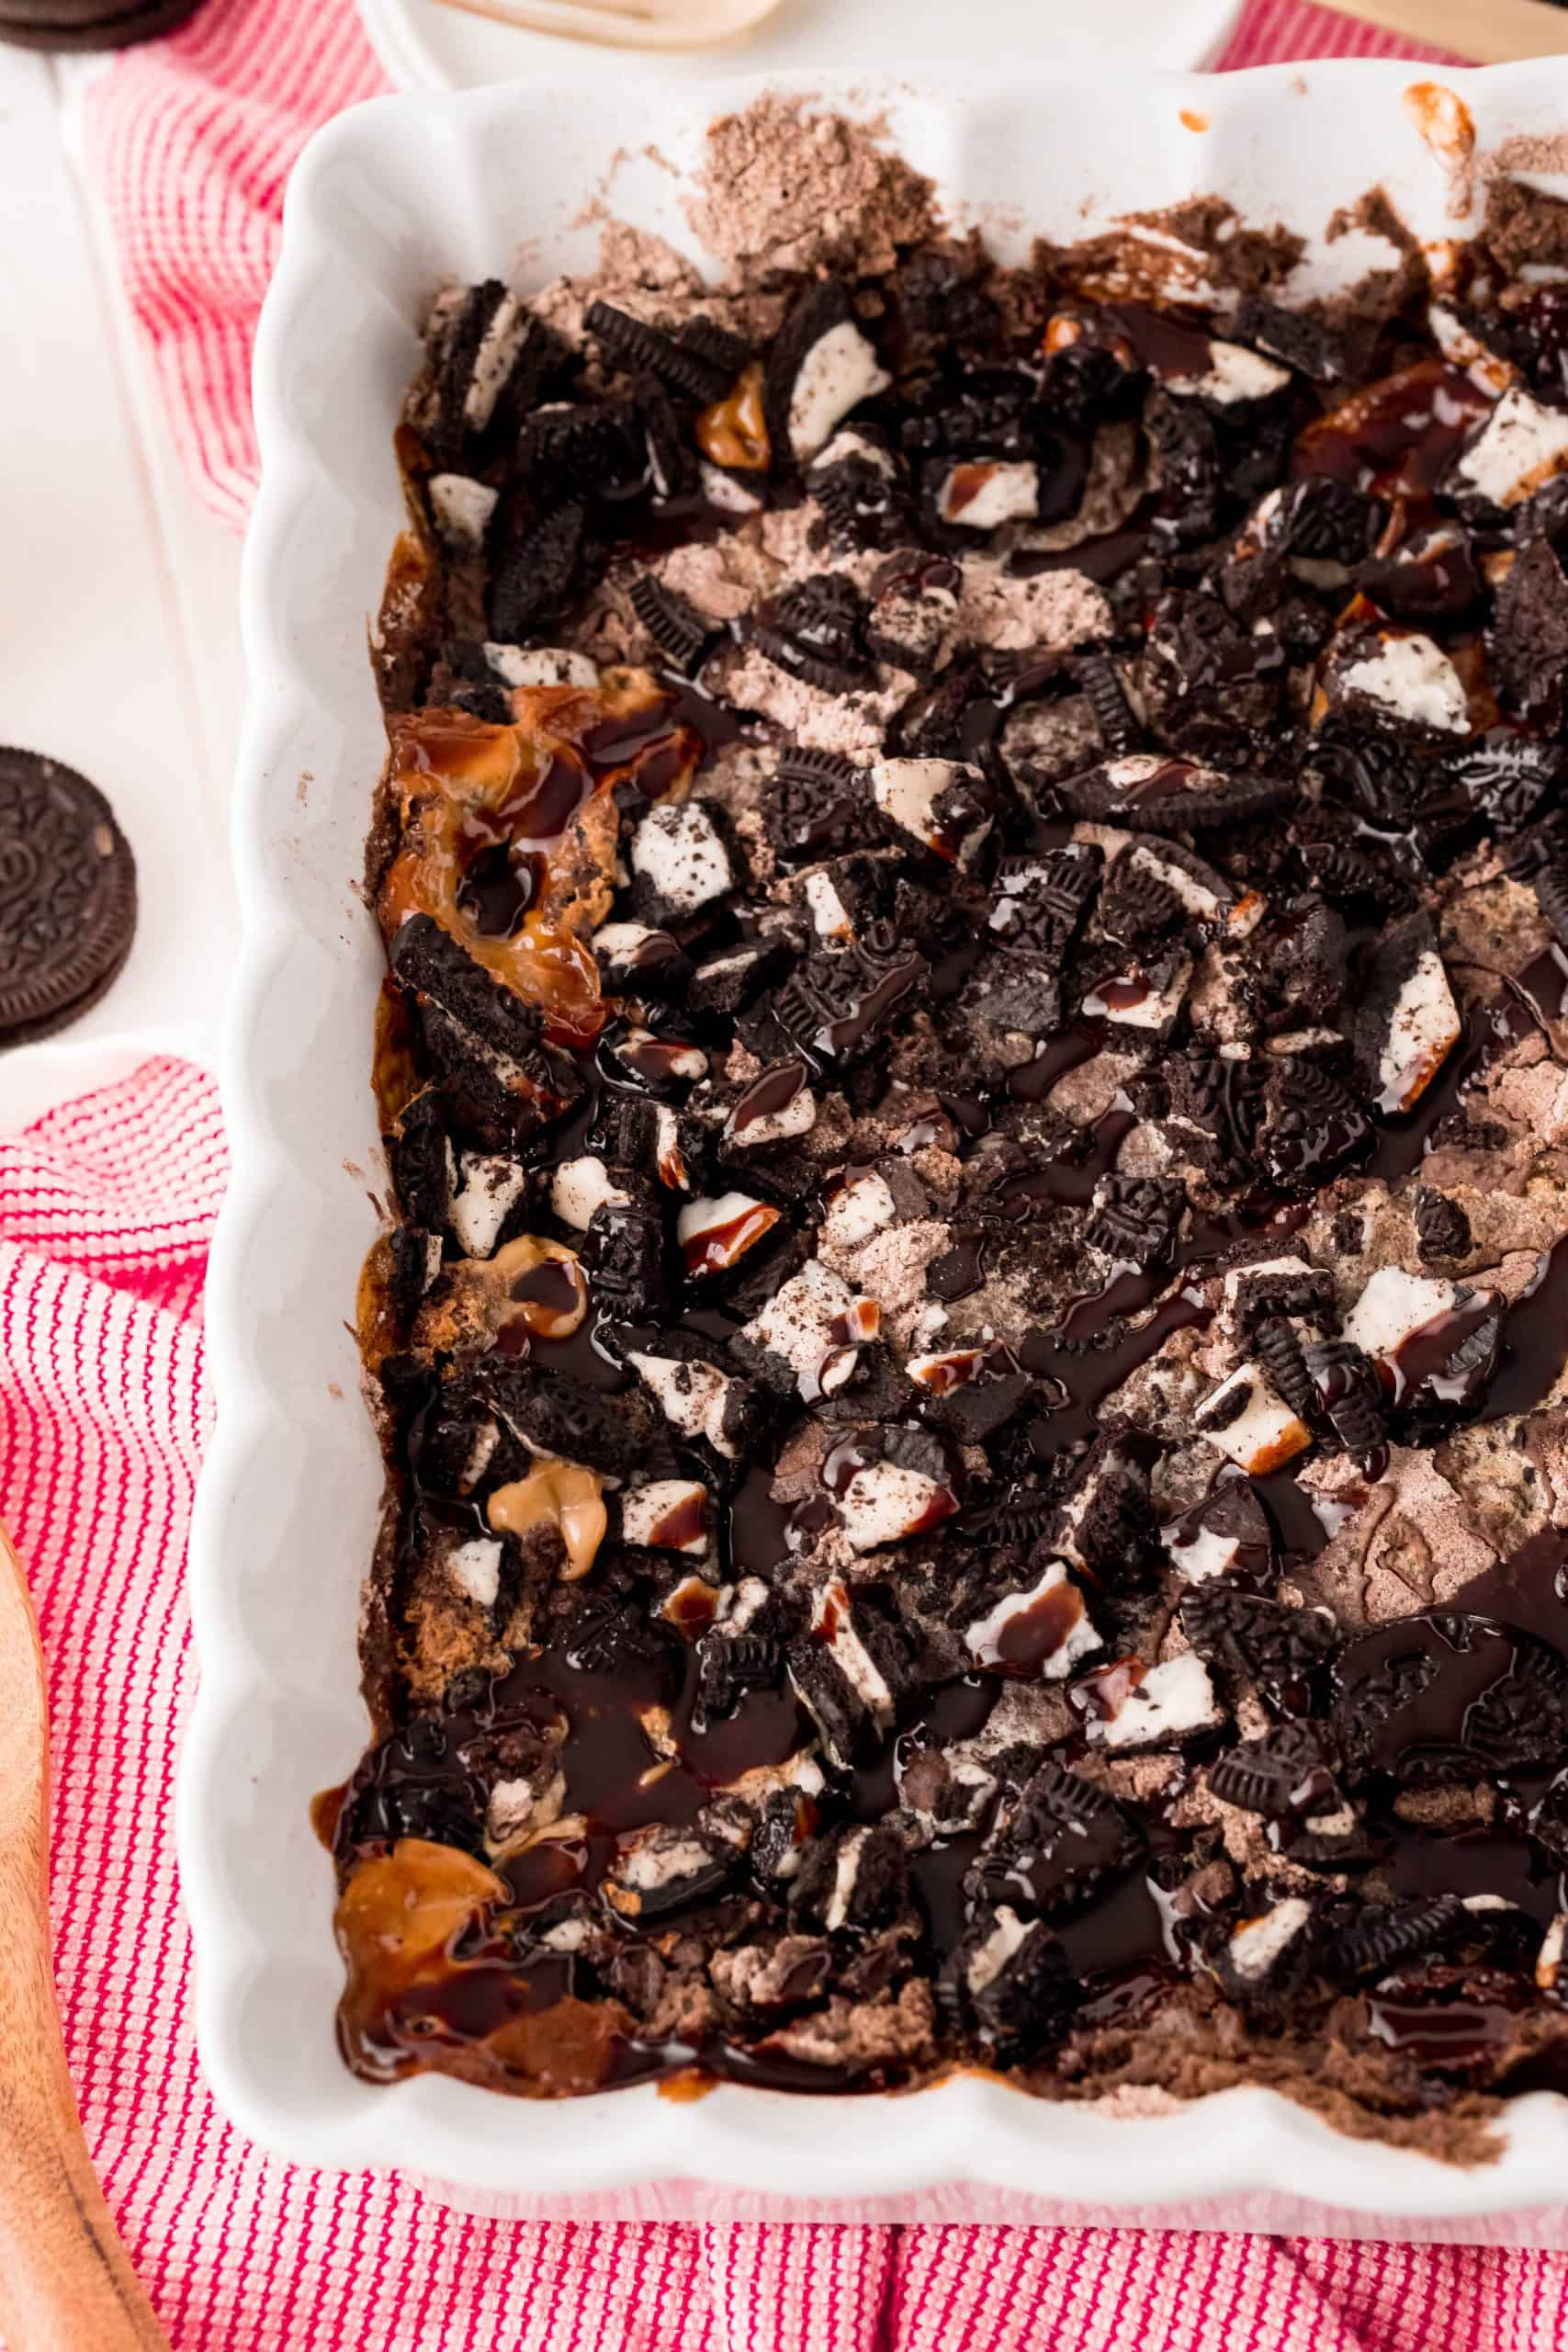 Finished Oreo Dump Cake Recipe out of oven in pan with a red and white kitchen towel underneath.